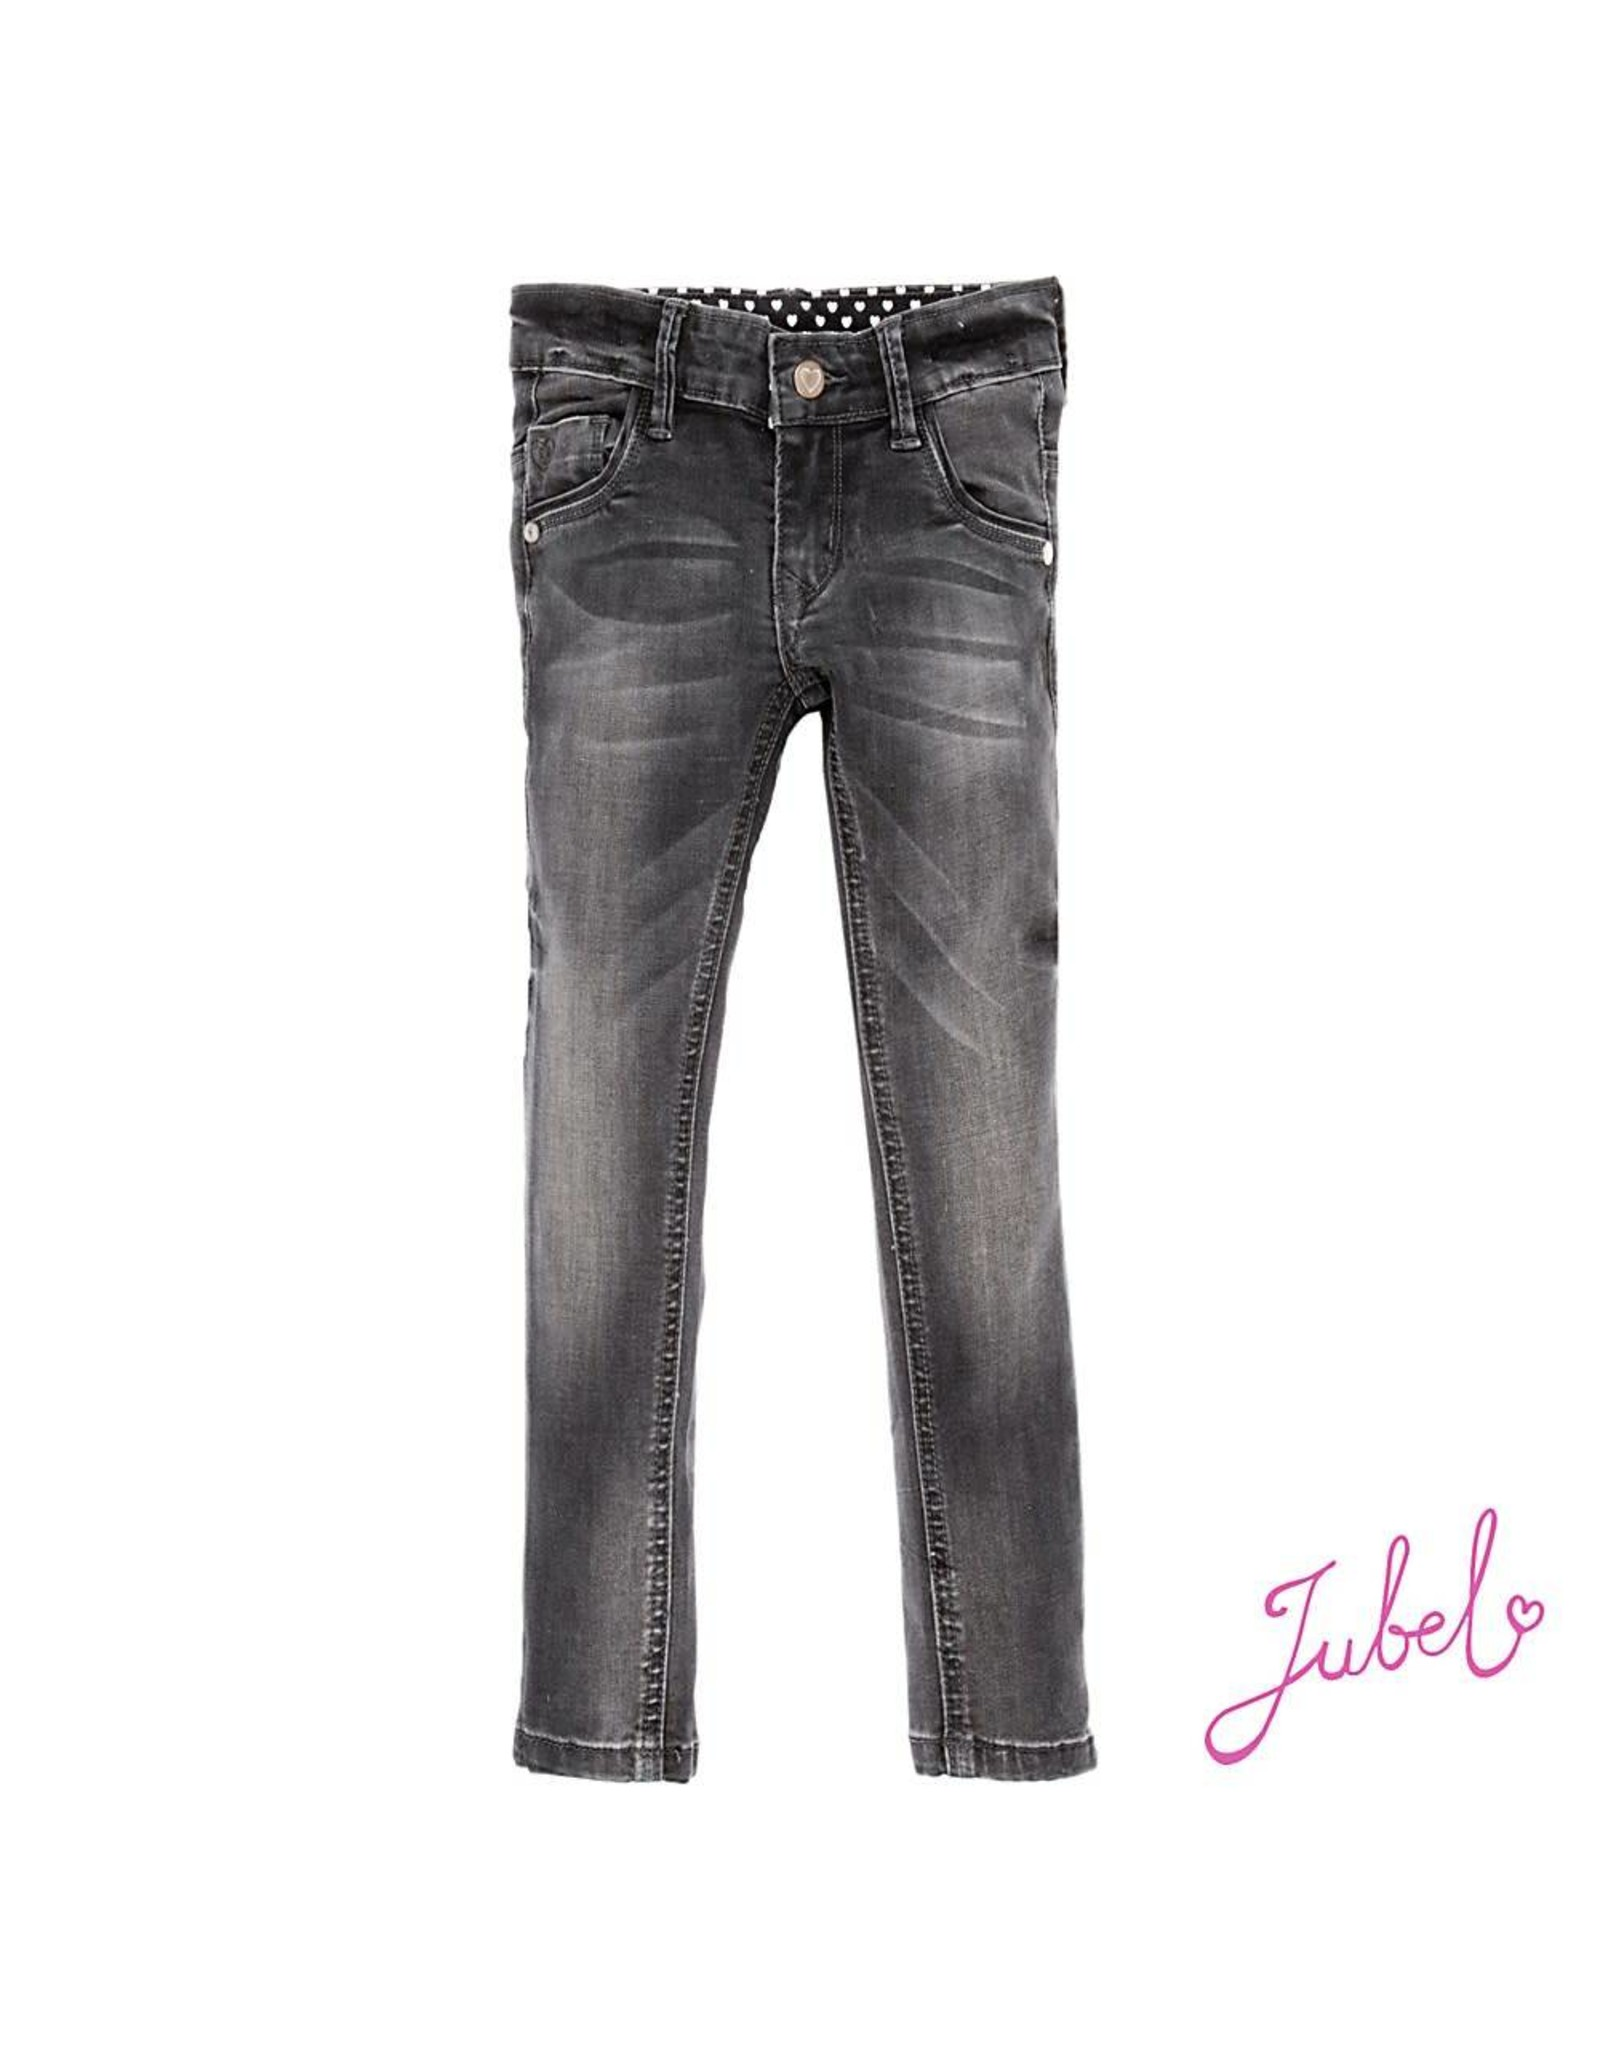 Jubel Broek antraciet denim power stretch slim